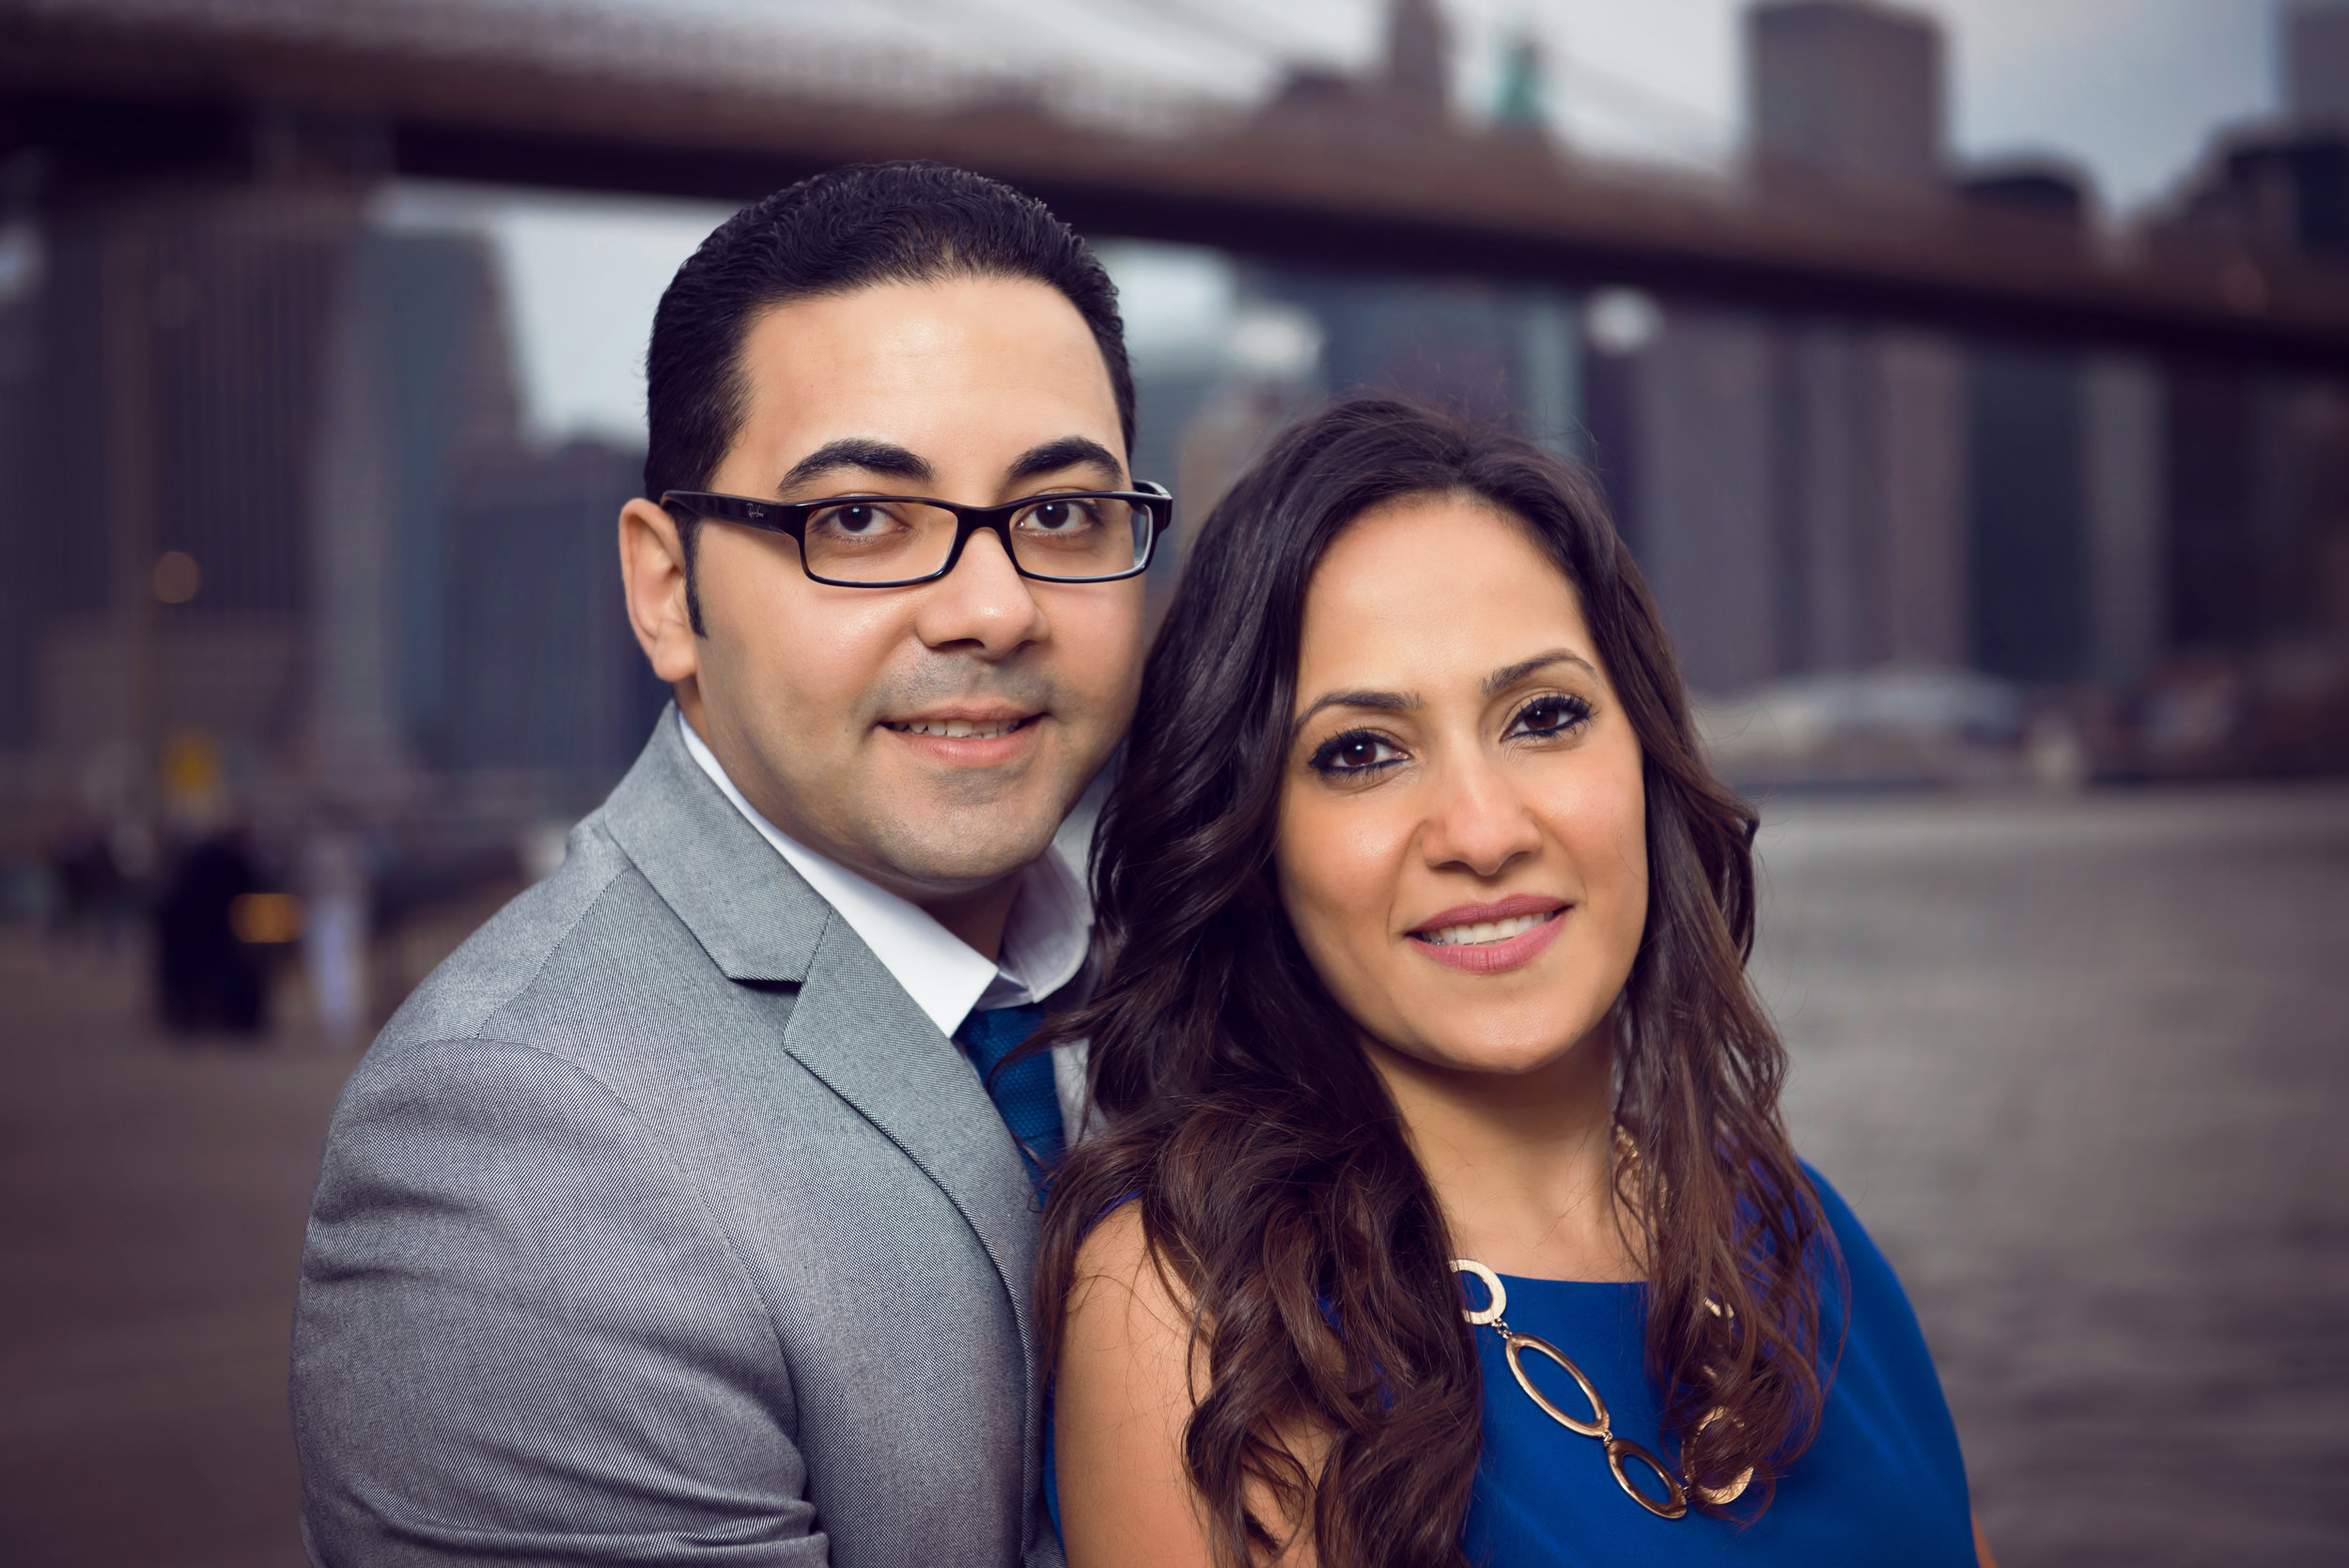 Brooklyn Engagement shoot - Wedding Photographer00550.jpg